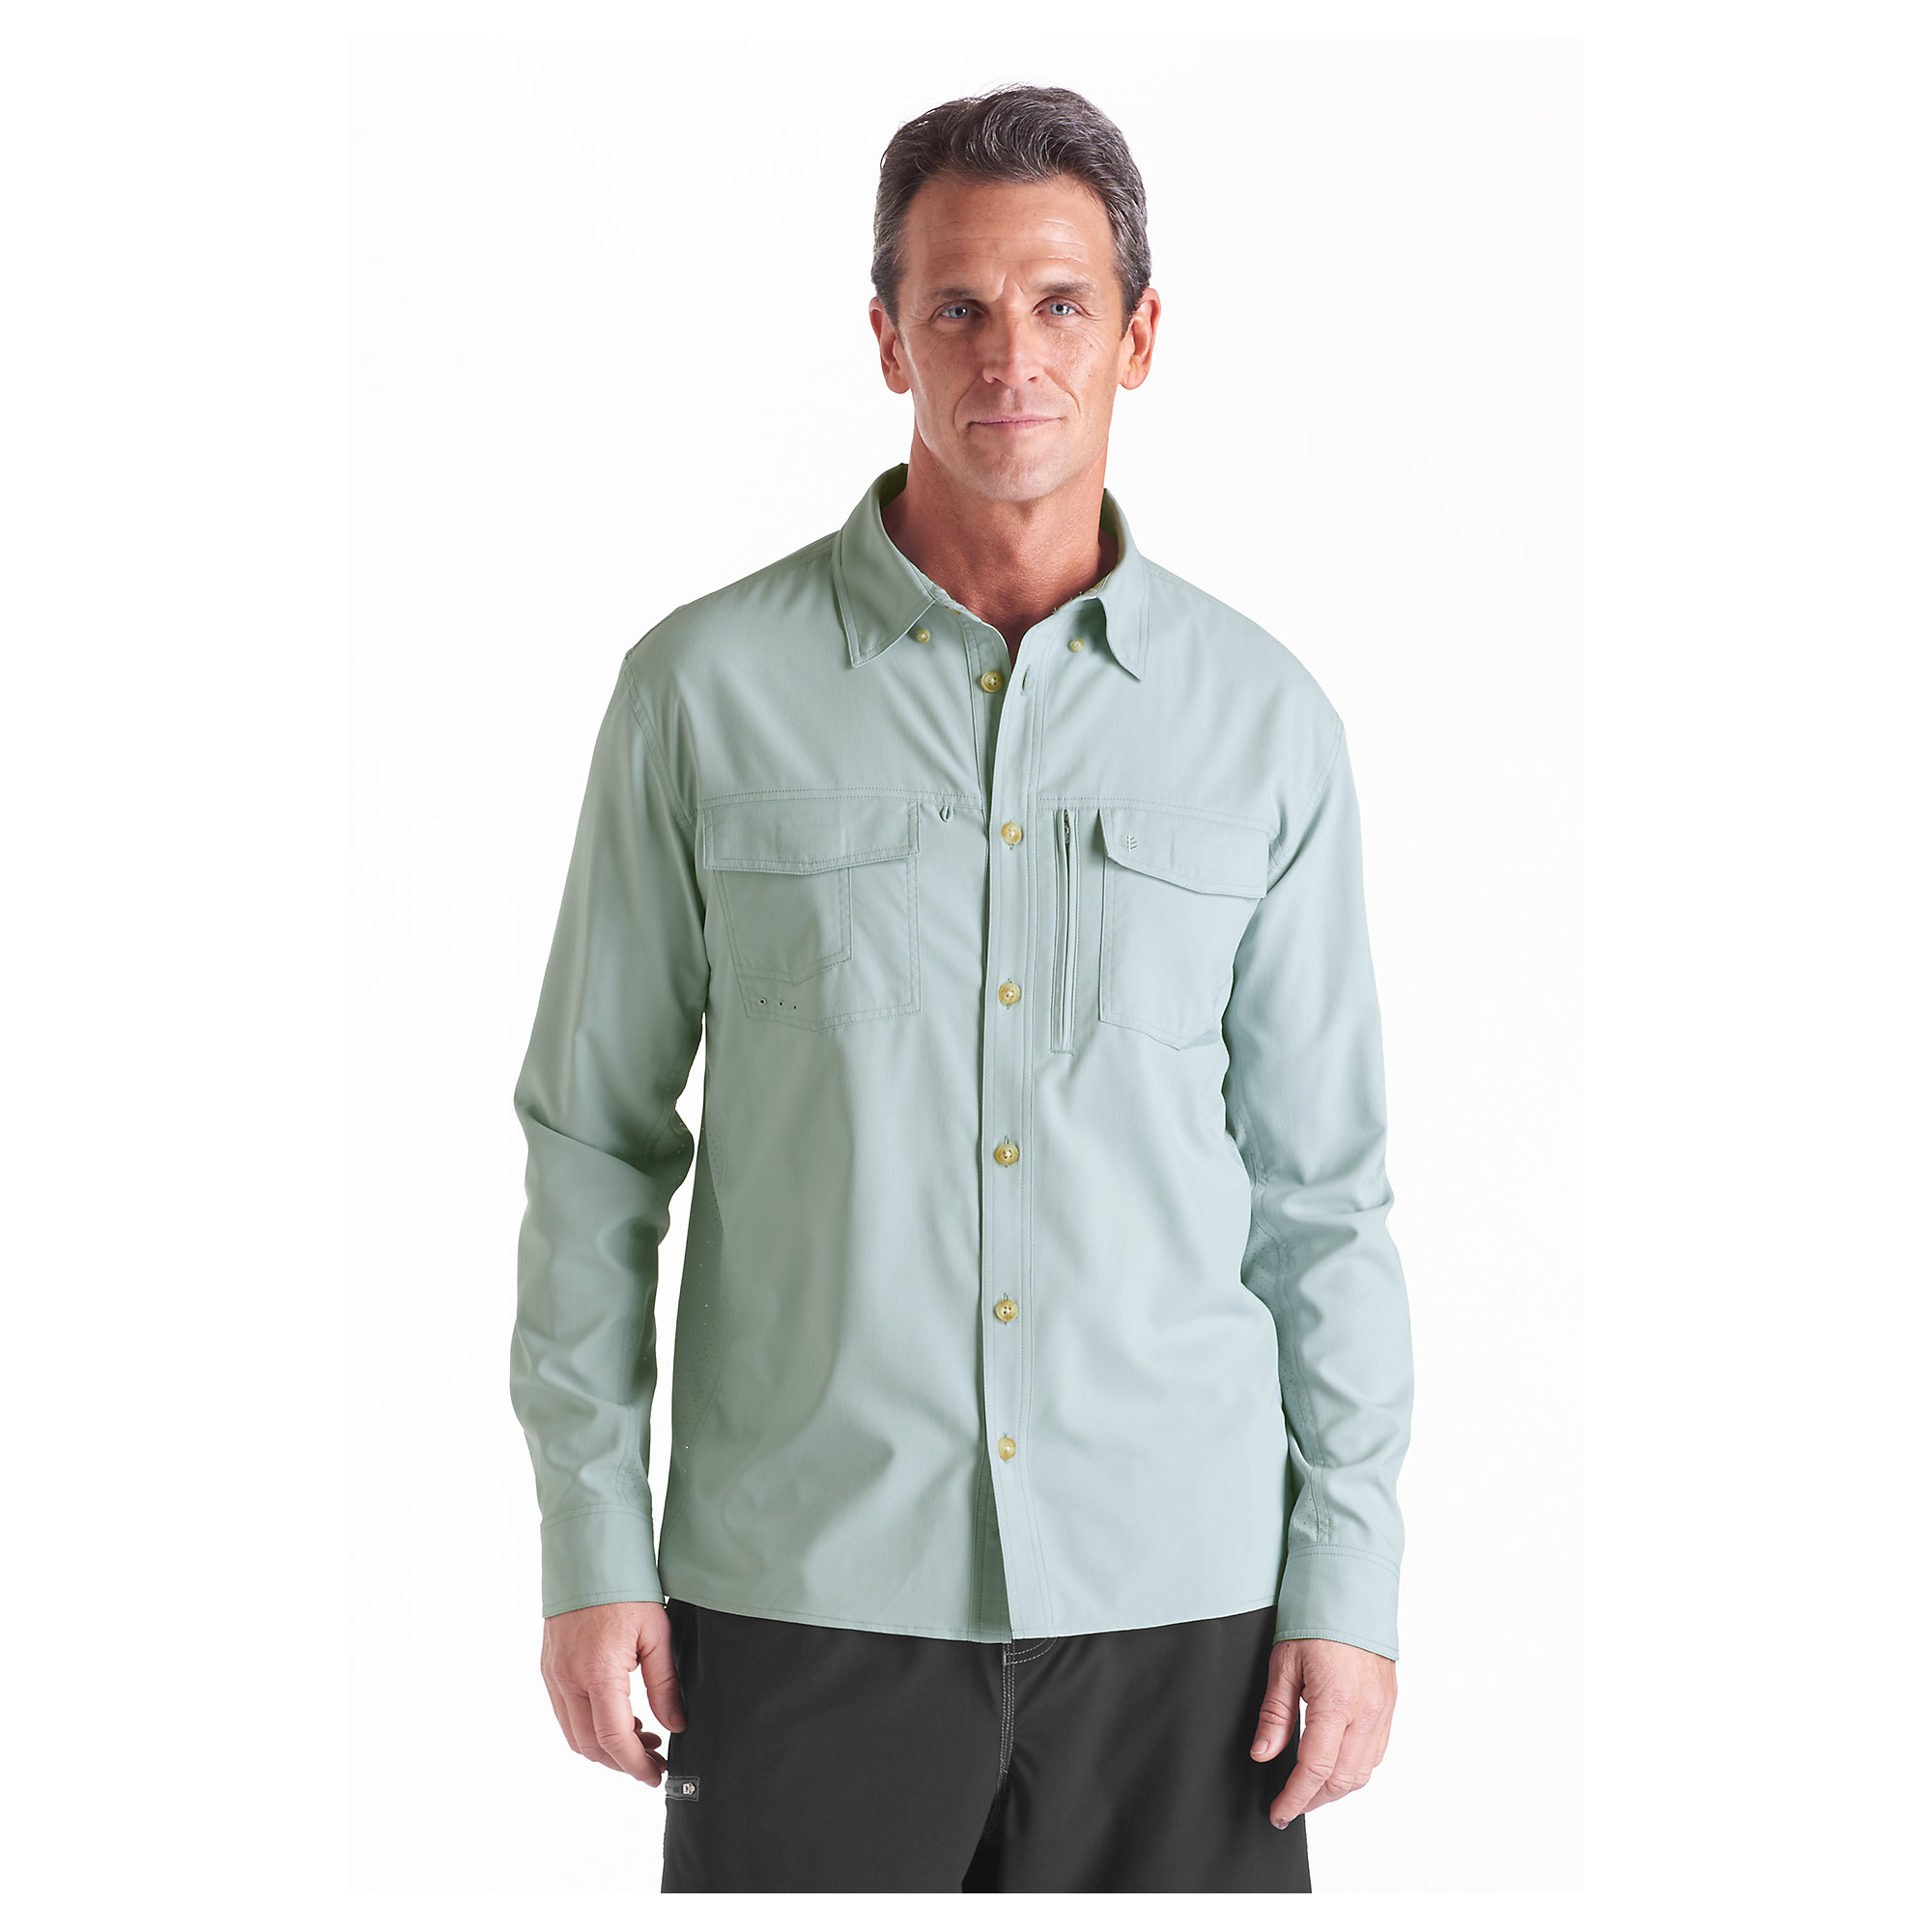 Coolibar upf 50 men 39 s fishing shirt sun protective ebay for Mens fishing shirts